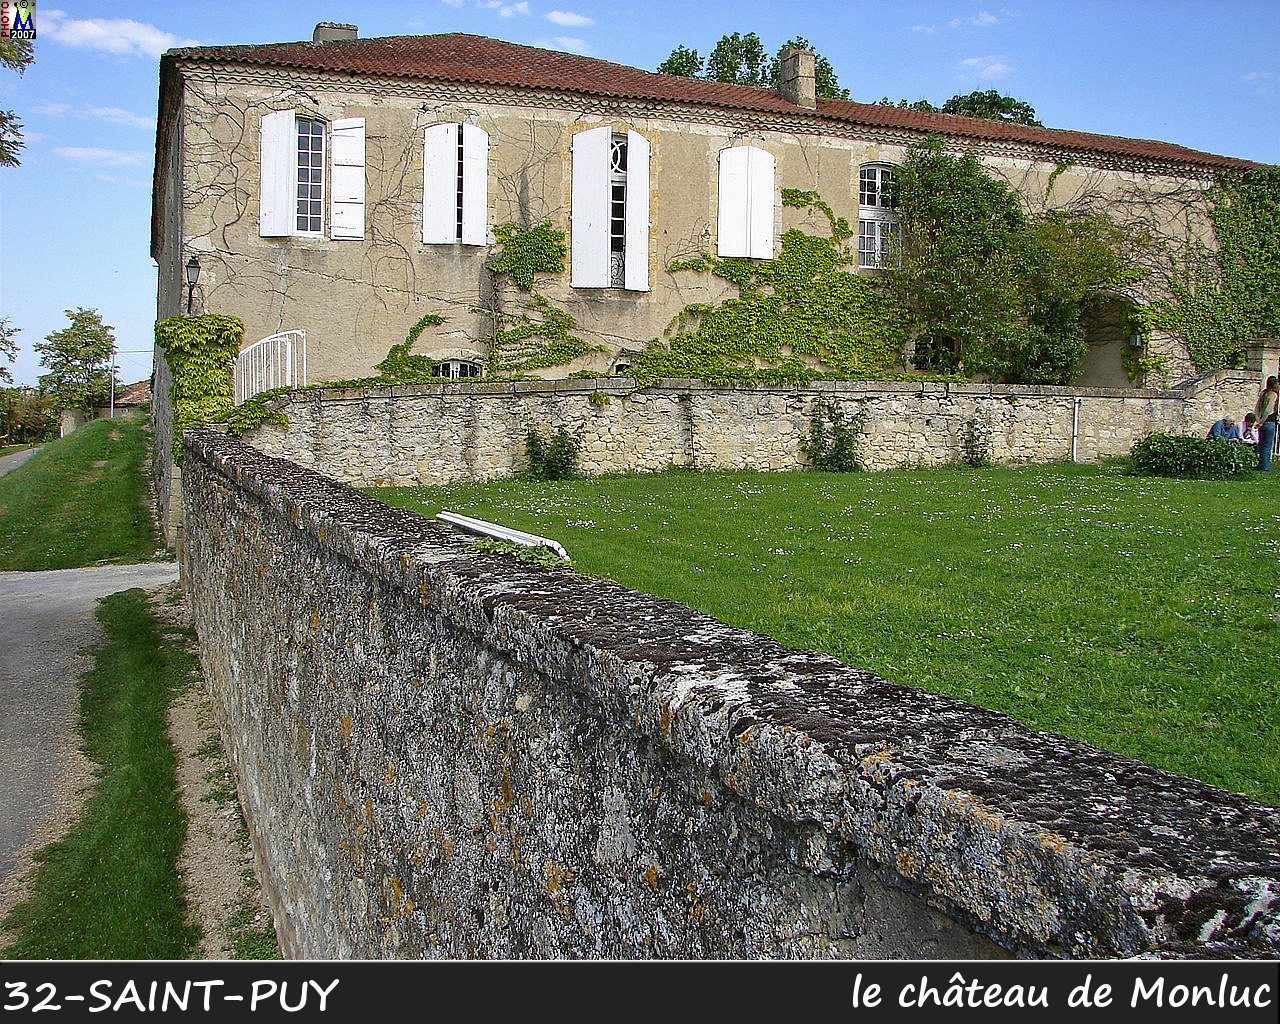 32St-PUY_chateau_102.jpg